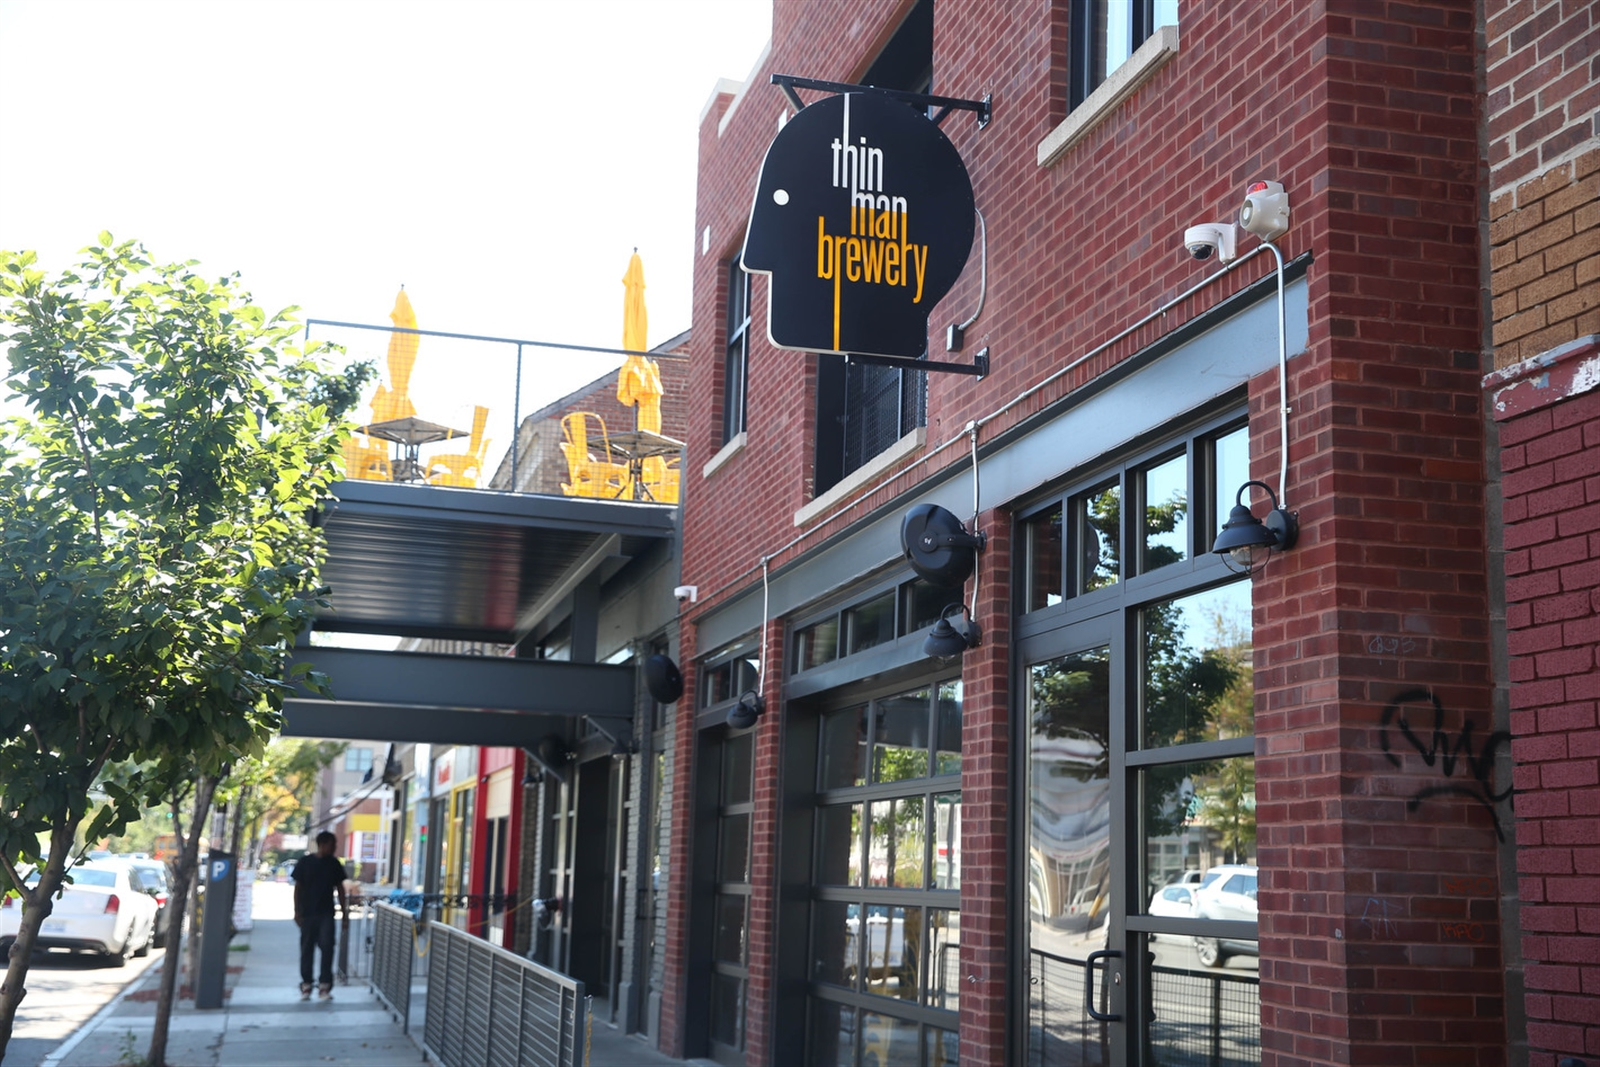 Thin Man Brewery, 490 Elmwood Ave., offers more ambitious food than most breweries.